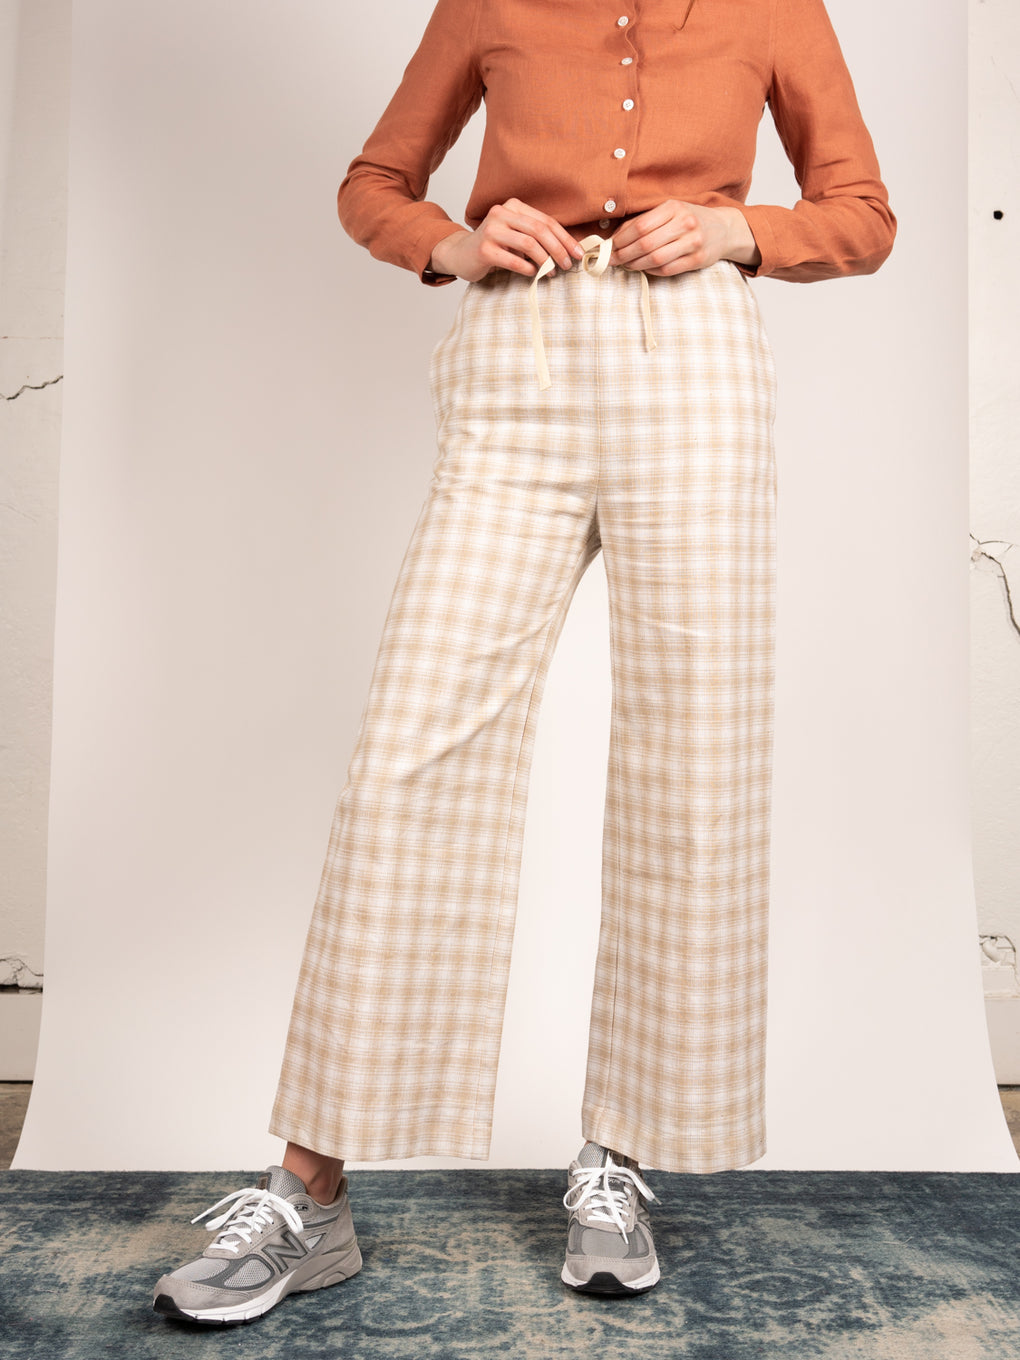 Town Clothes high waisted, wide leg, linen pant in plaid with drawstring waist.